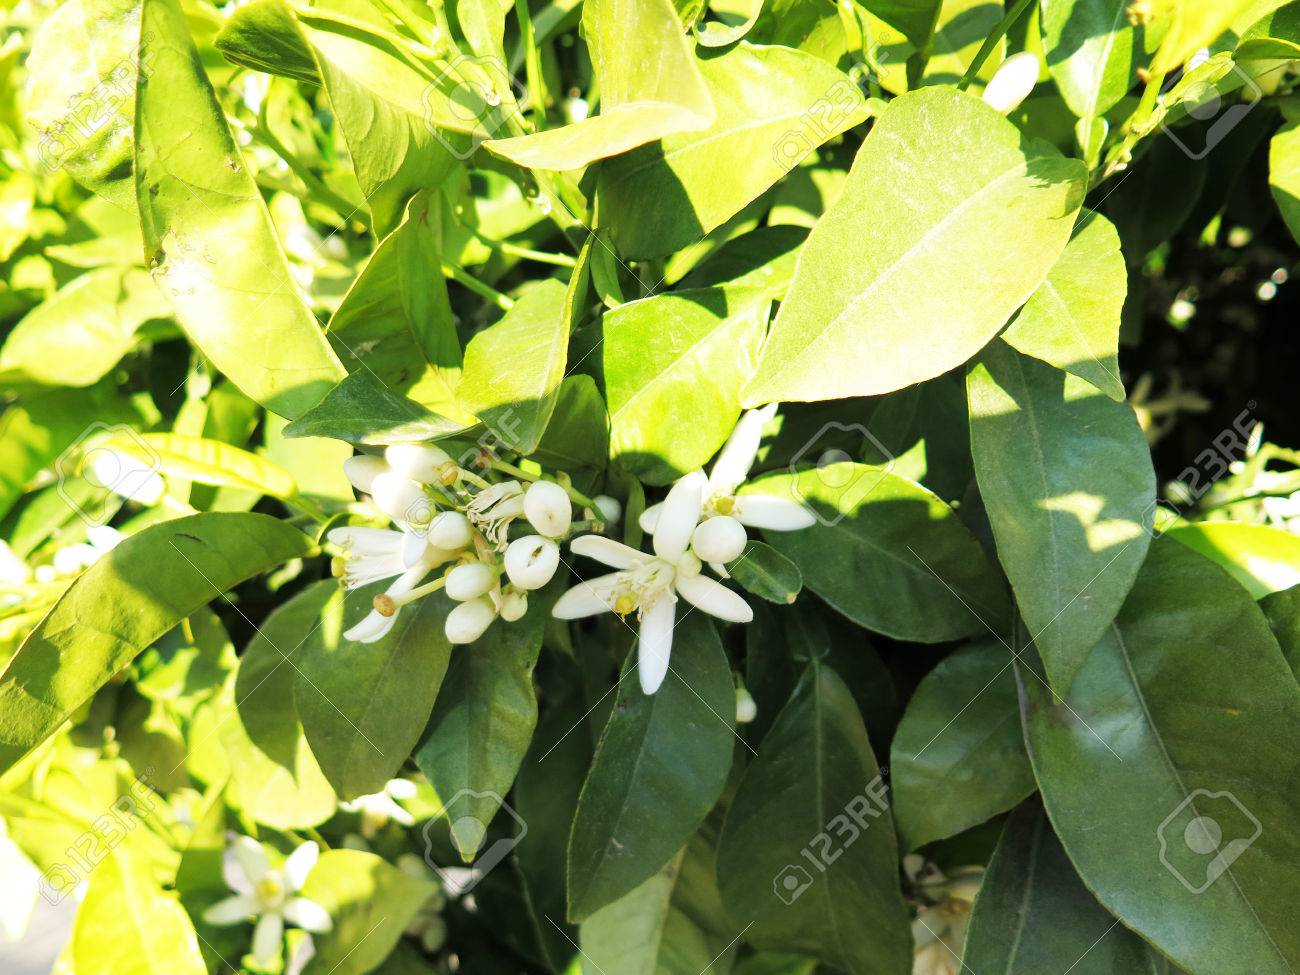 Orange blossom is the waxy white blossom of the orange tree orange blossom is the waxy white blossom of the orange tree orange blossom are mightylinksfo